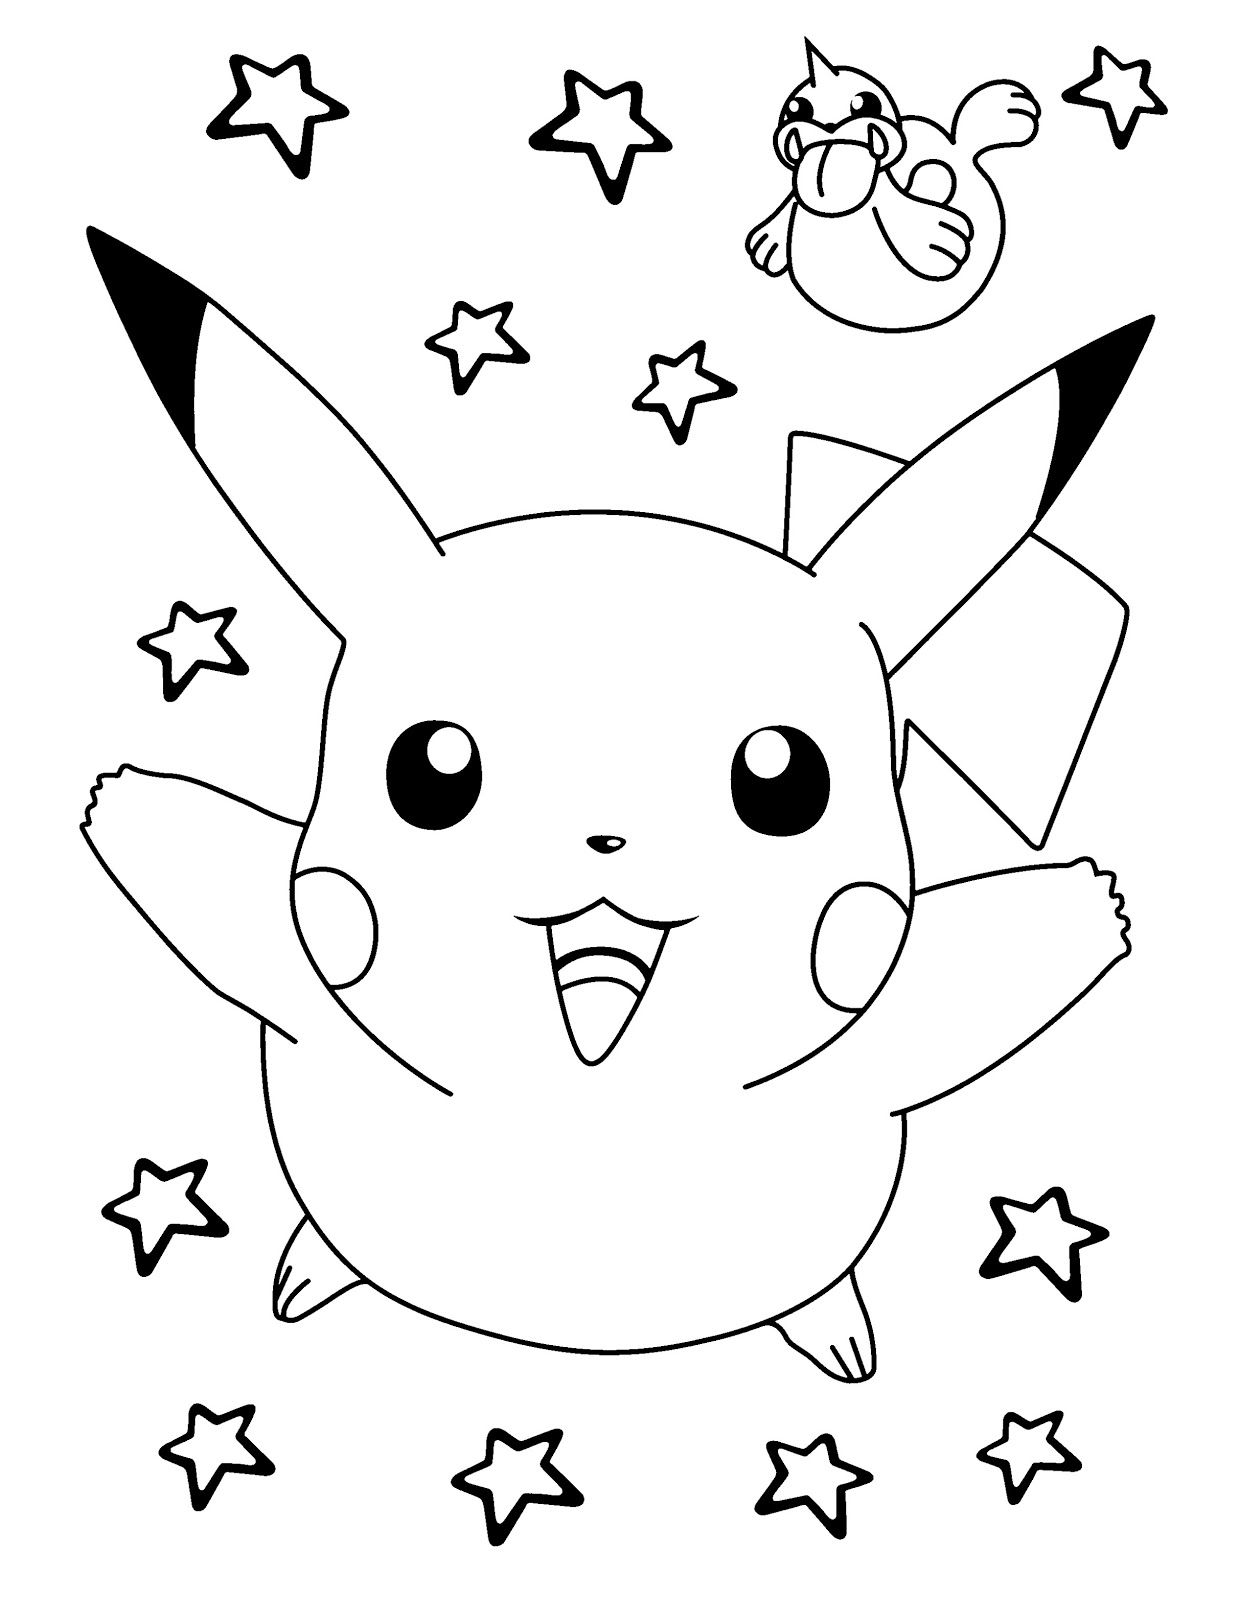 printable pictures of pokemon pikachu characters coloring drawing books for kids to print